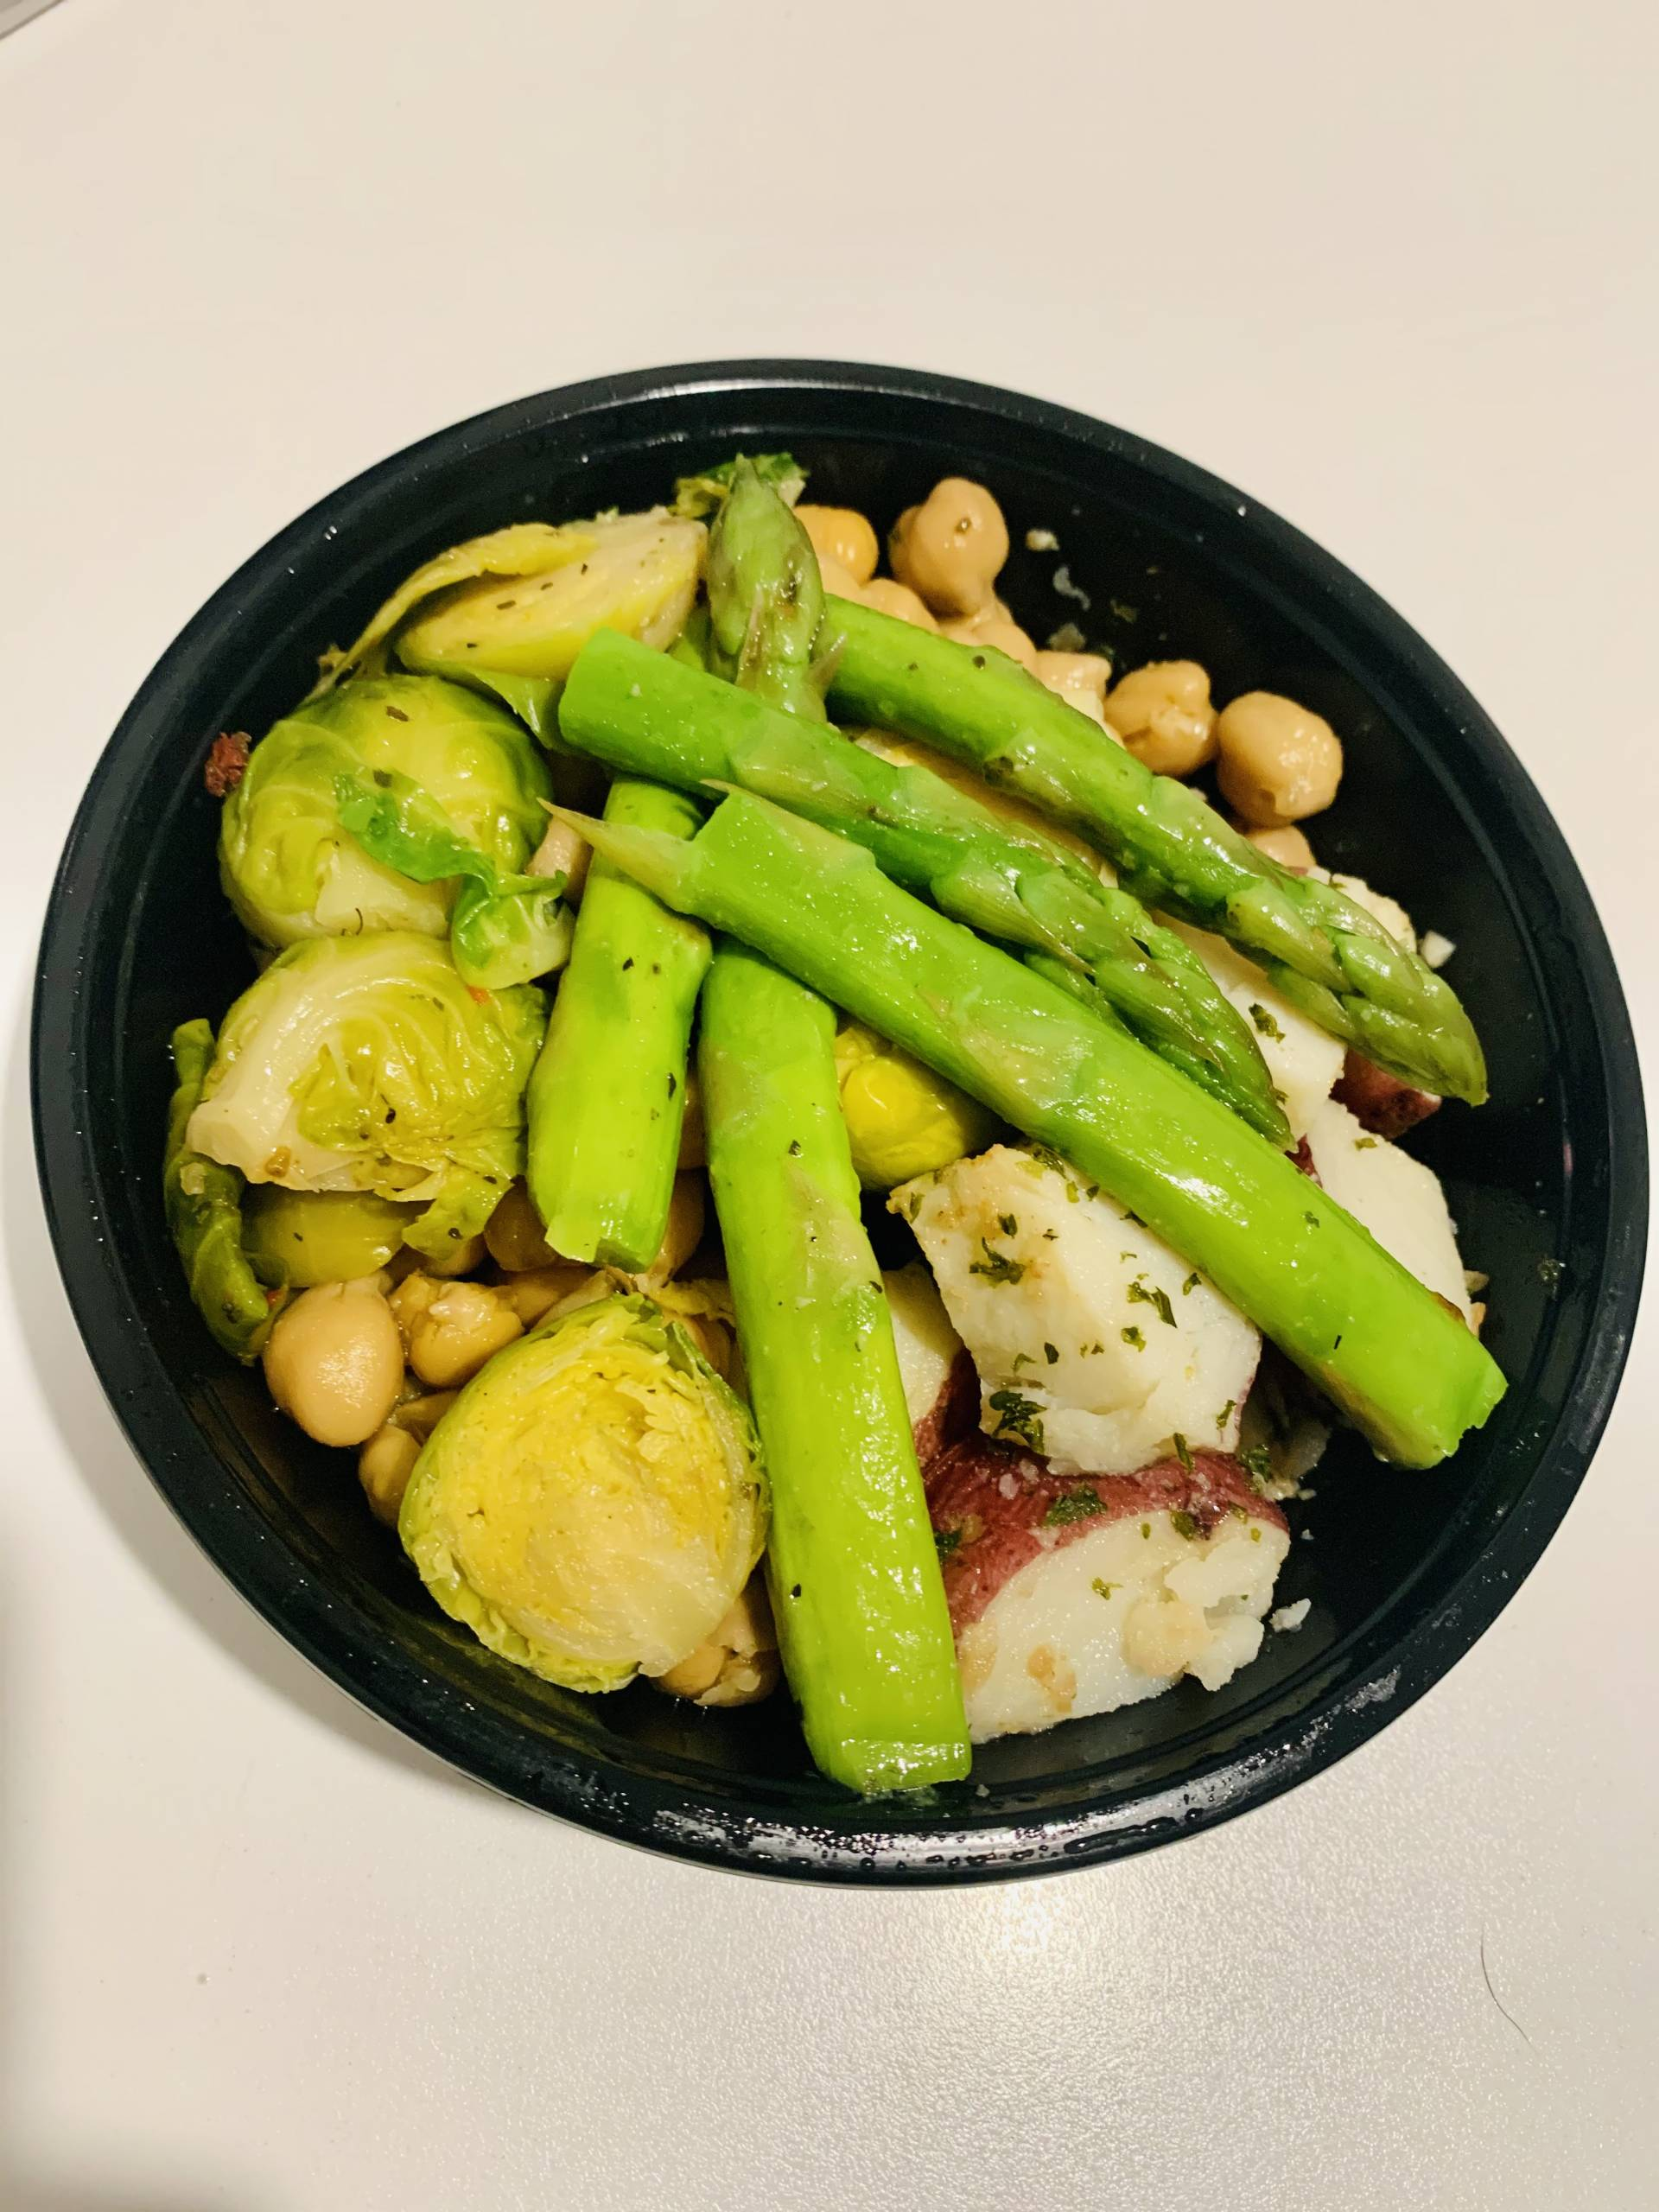 Garbanzo Beans, Red Potato, Asparagus and Brussel